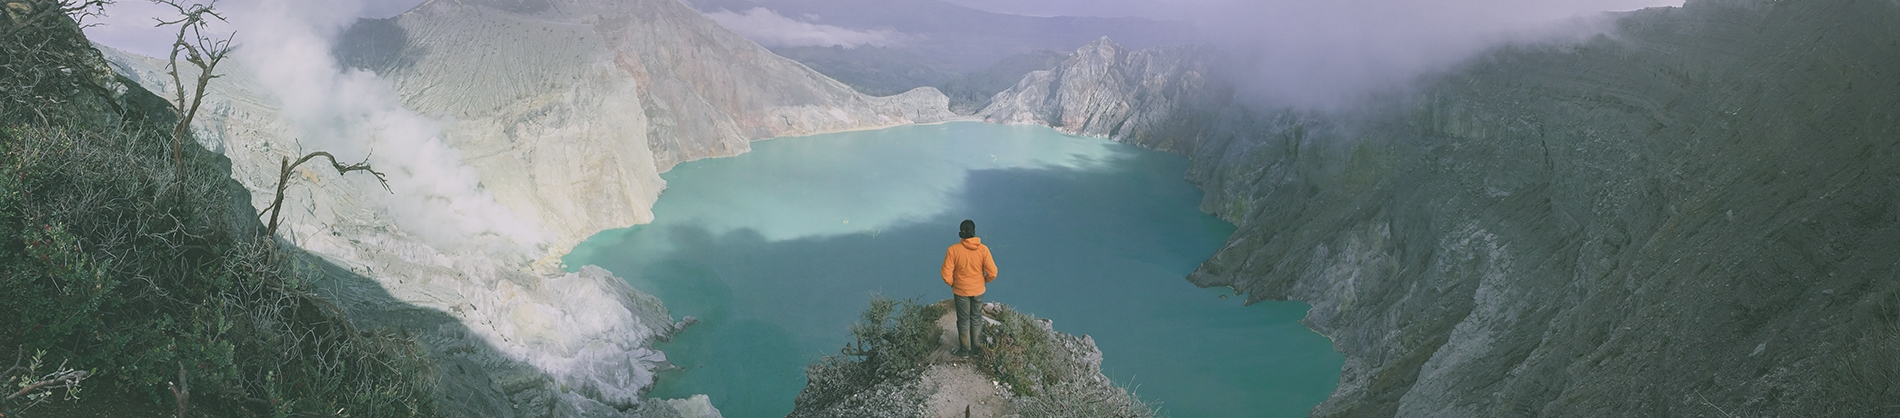 A man looking over a cliff edge into a valley